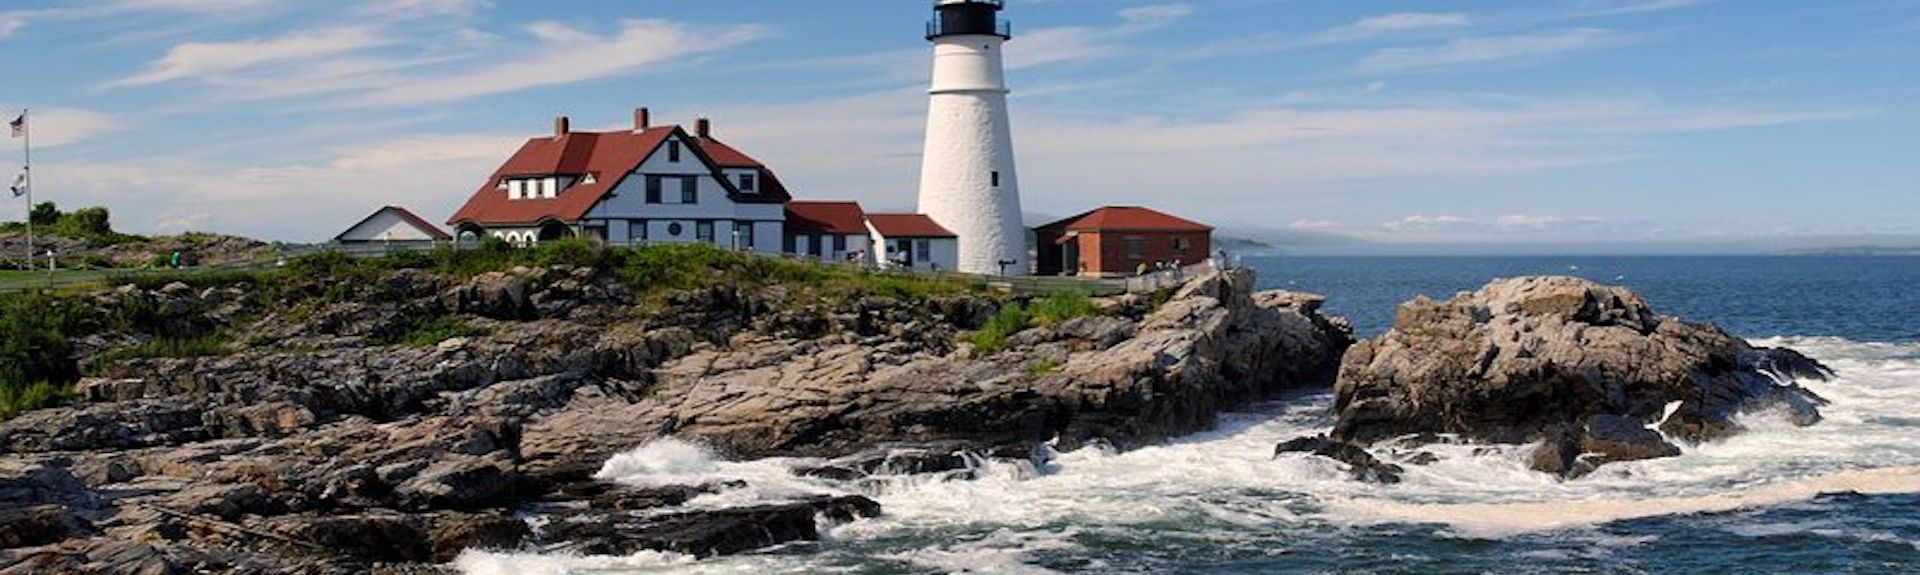 Sørkysten, Maine, USA